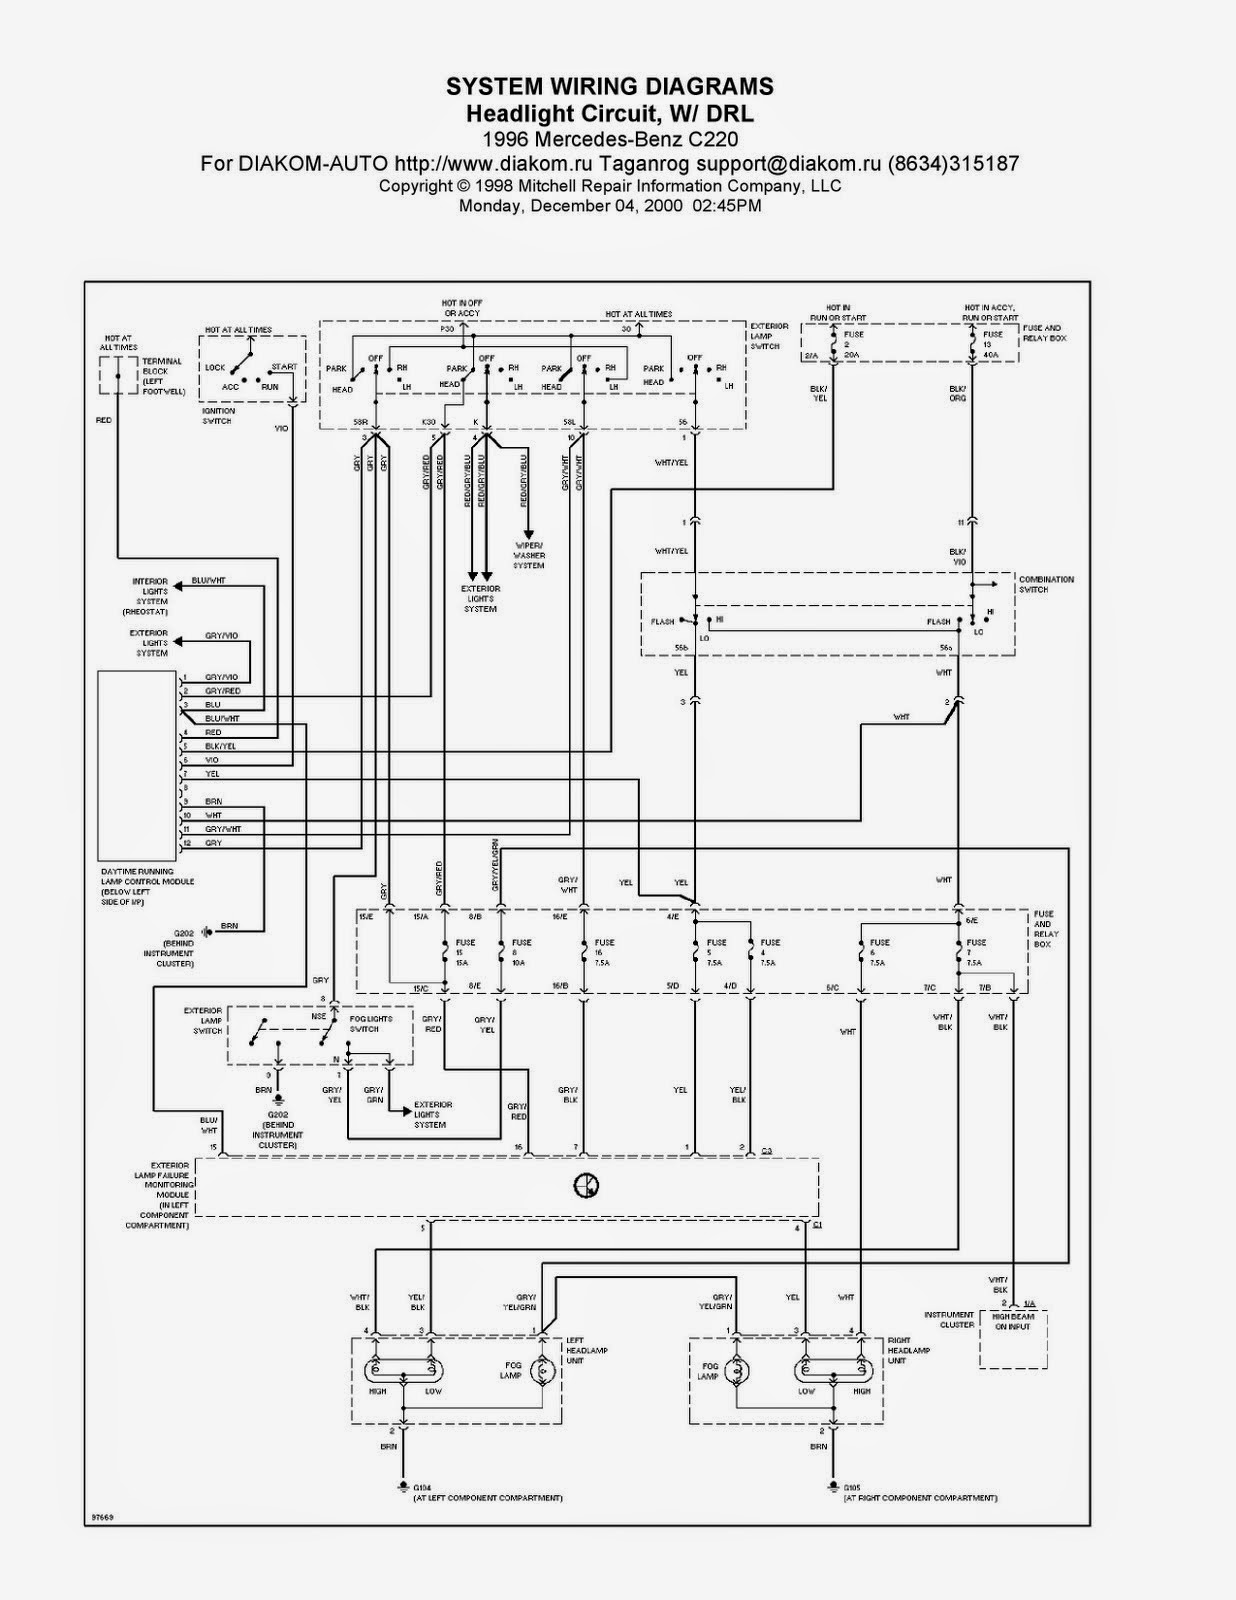 Mercedes Benz Engine Wiring Diagram : September free guide manual